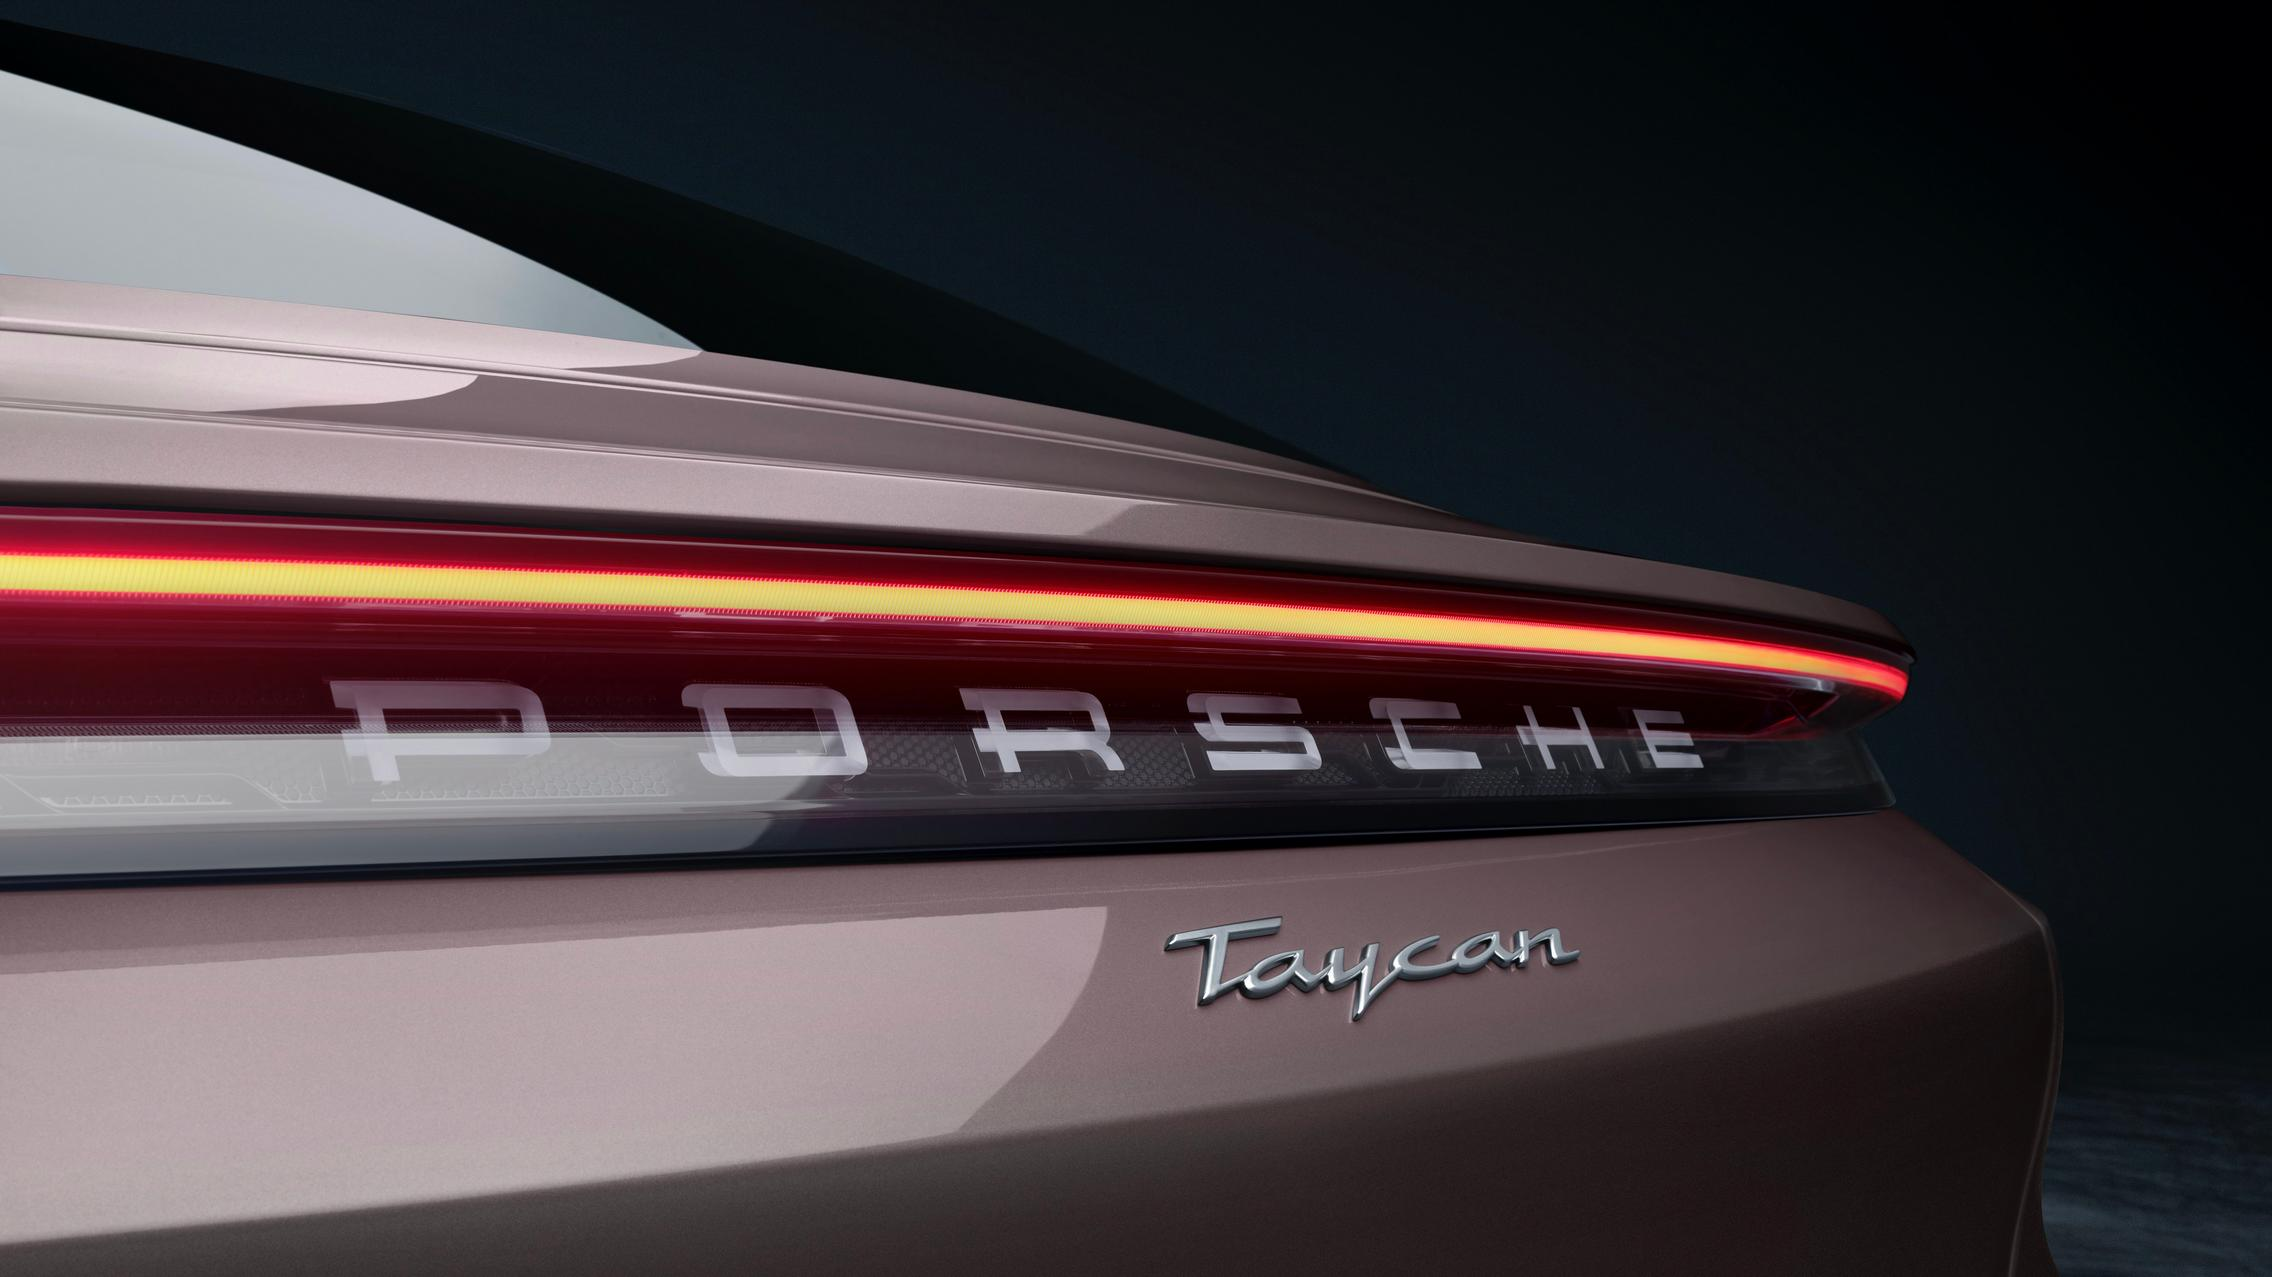 Porsche Taycan RWD rear light